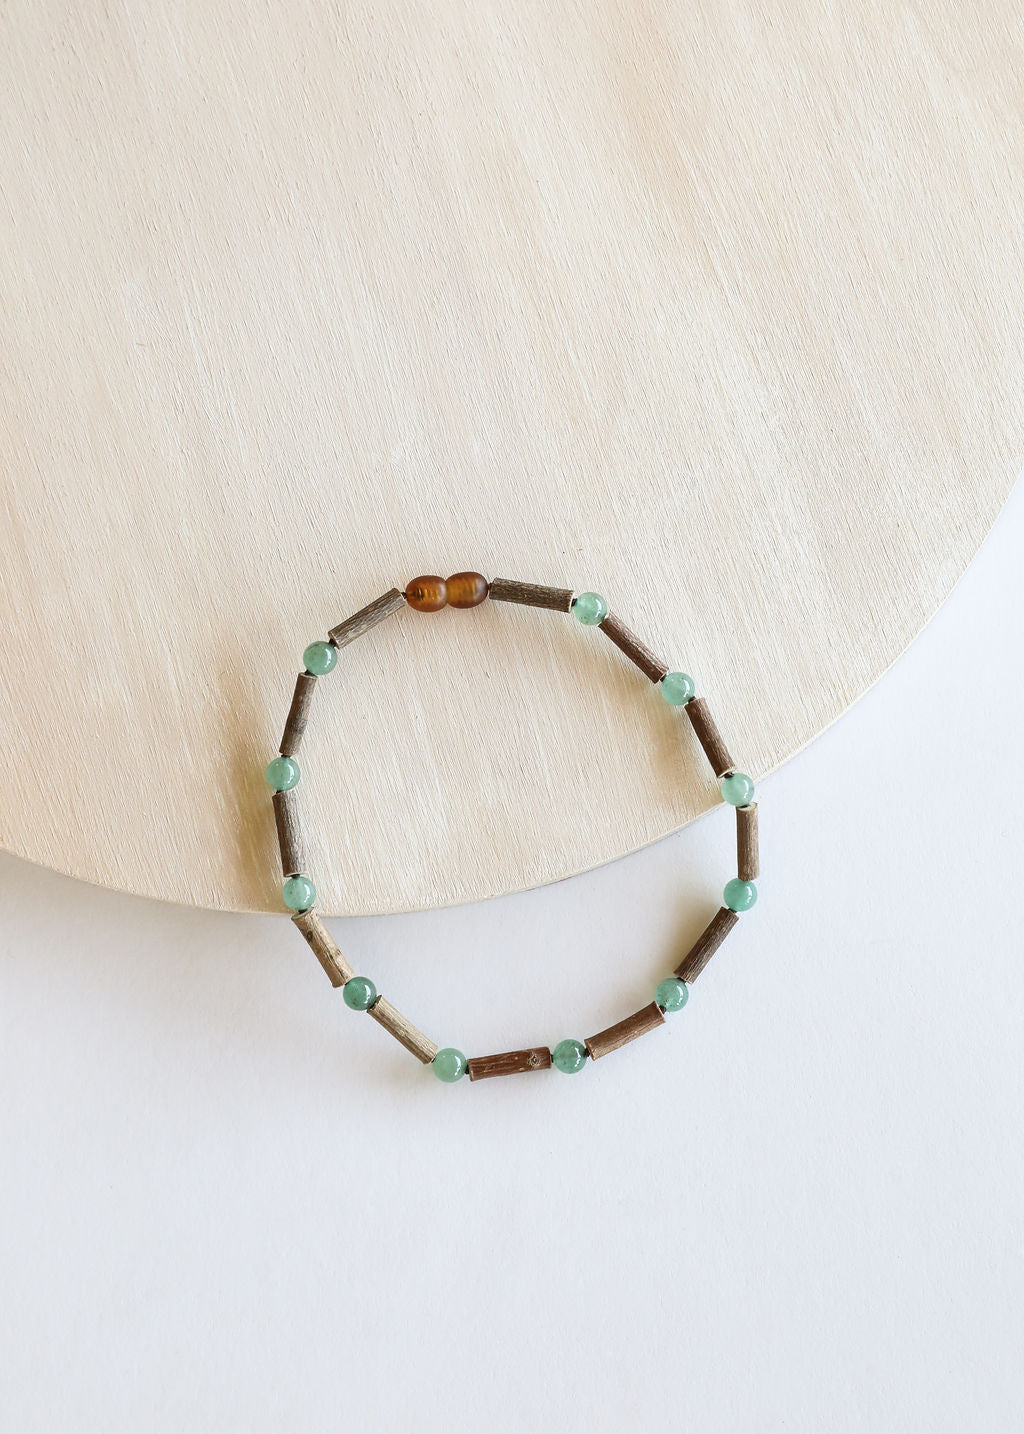 Hazelwood + Adventurine Necklace